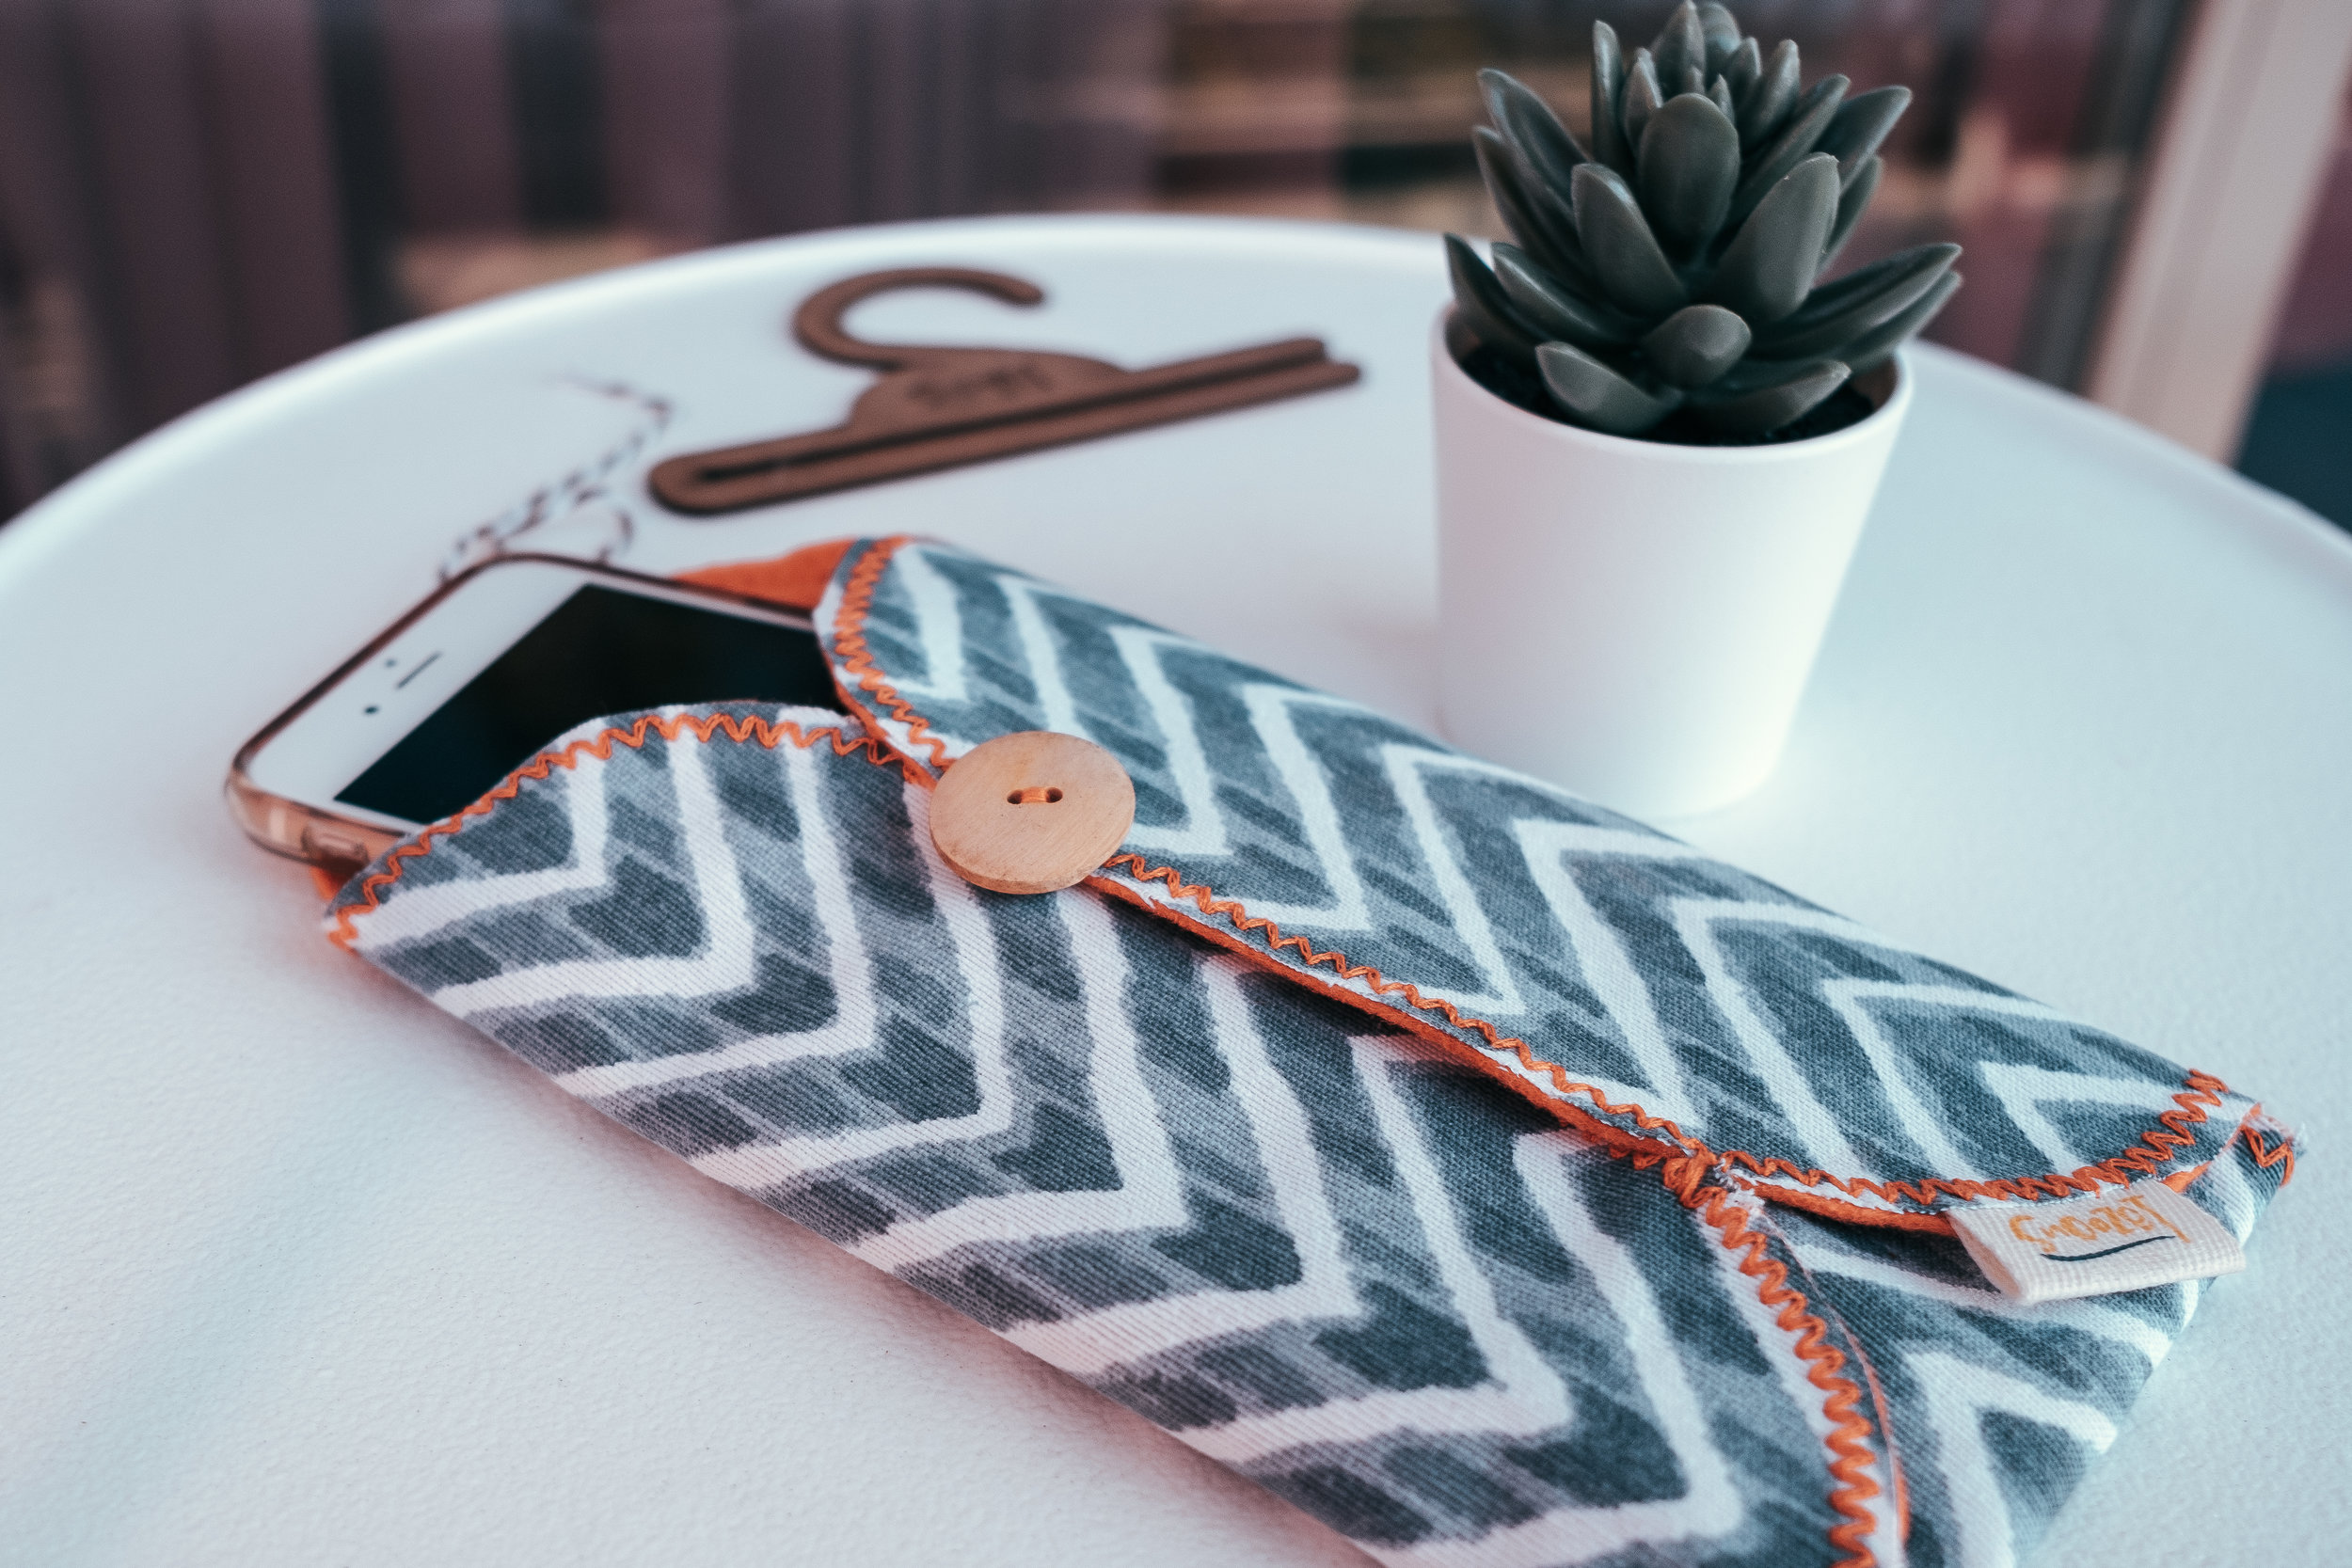 Snoozet - A handmade fabric pocket that lets you live outside your phone.Assembled by a group of women in Mexico and then handpainted in Sunny San Diego, Snoozet simply allows you to be present while contributing to a beautiful cause: women working towards the reunification of their families.@snoozetlifewww.snoozet.com